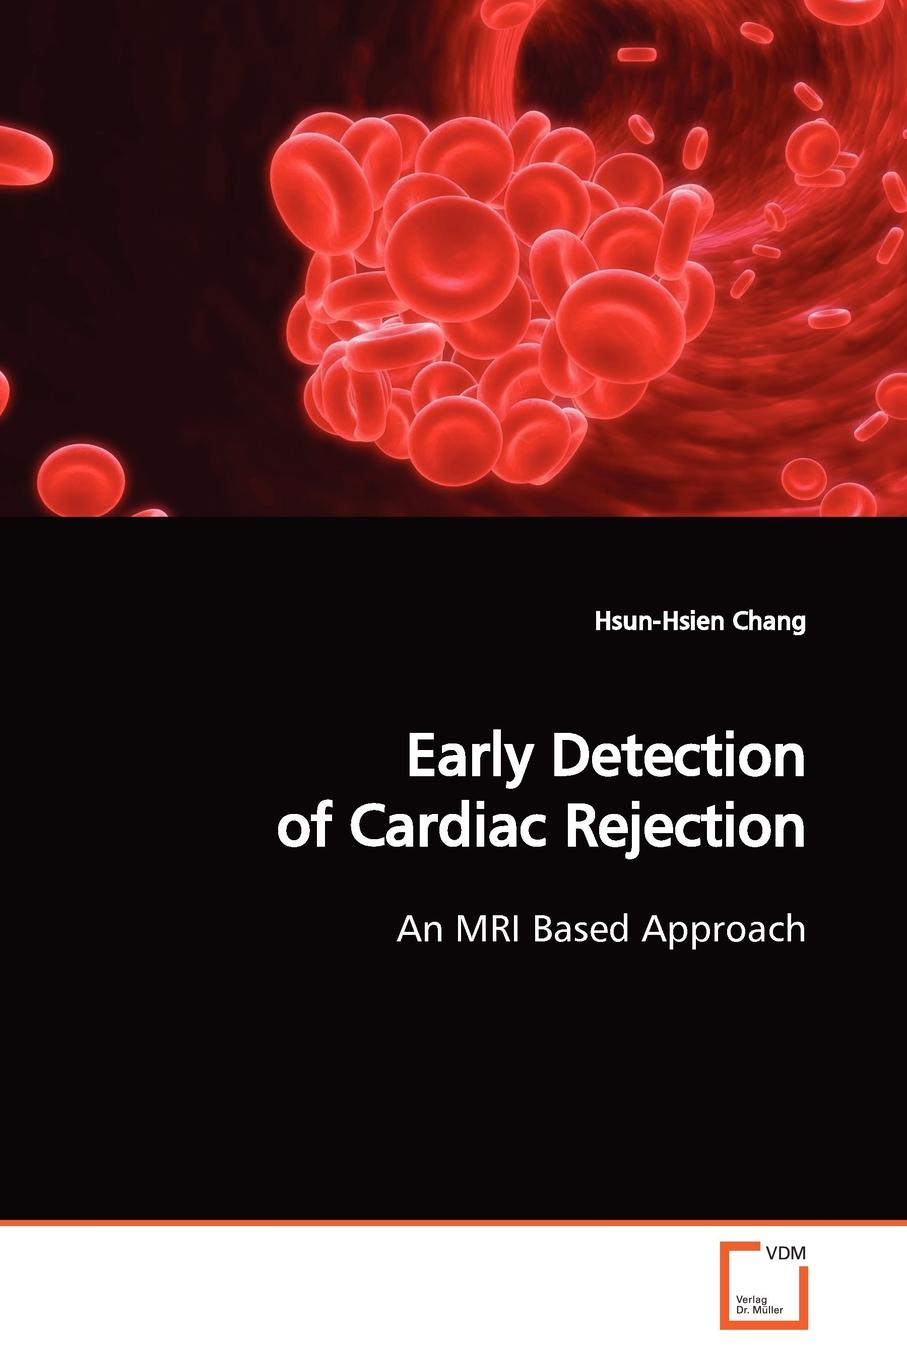 Hsun-Hsien Chang Early Detection of Cardiac Rejection john talbot mri in practice